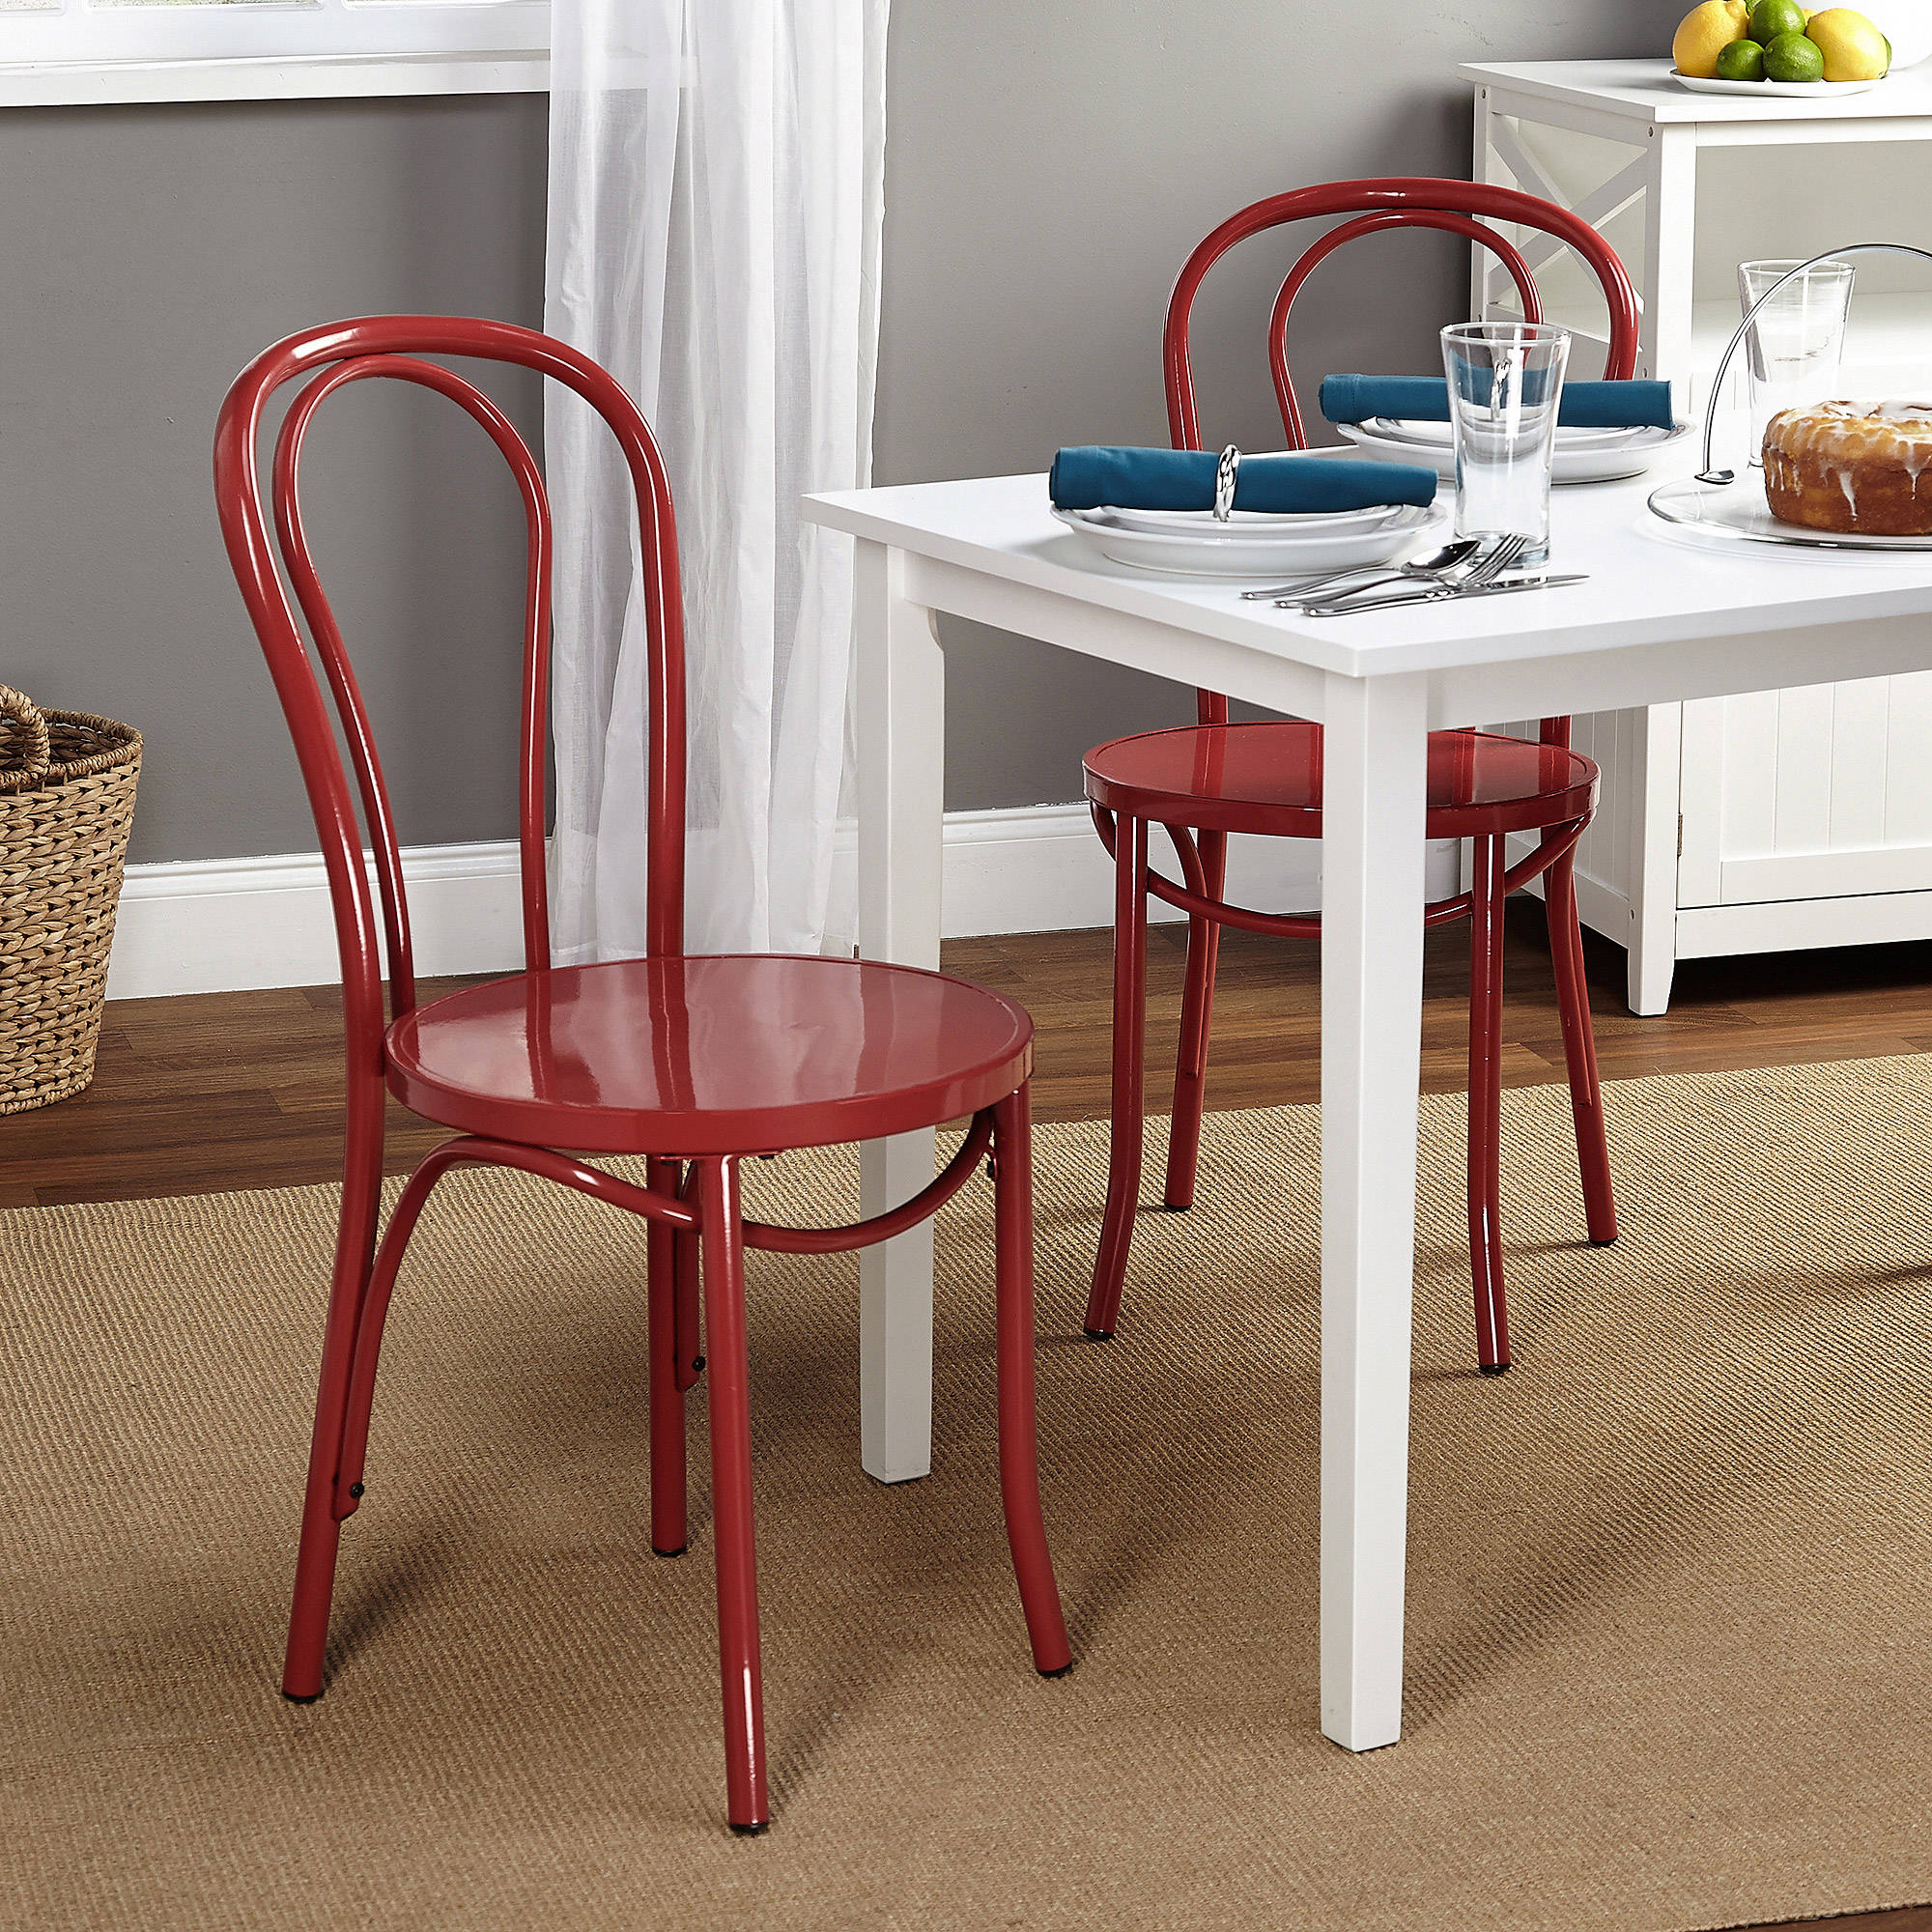 vintage inspired cafe chair set of 2 multiple colors walmartcom - Walmart Kitchen Chairs